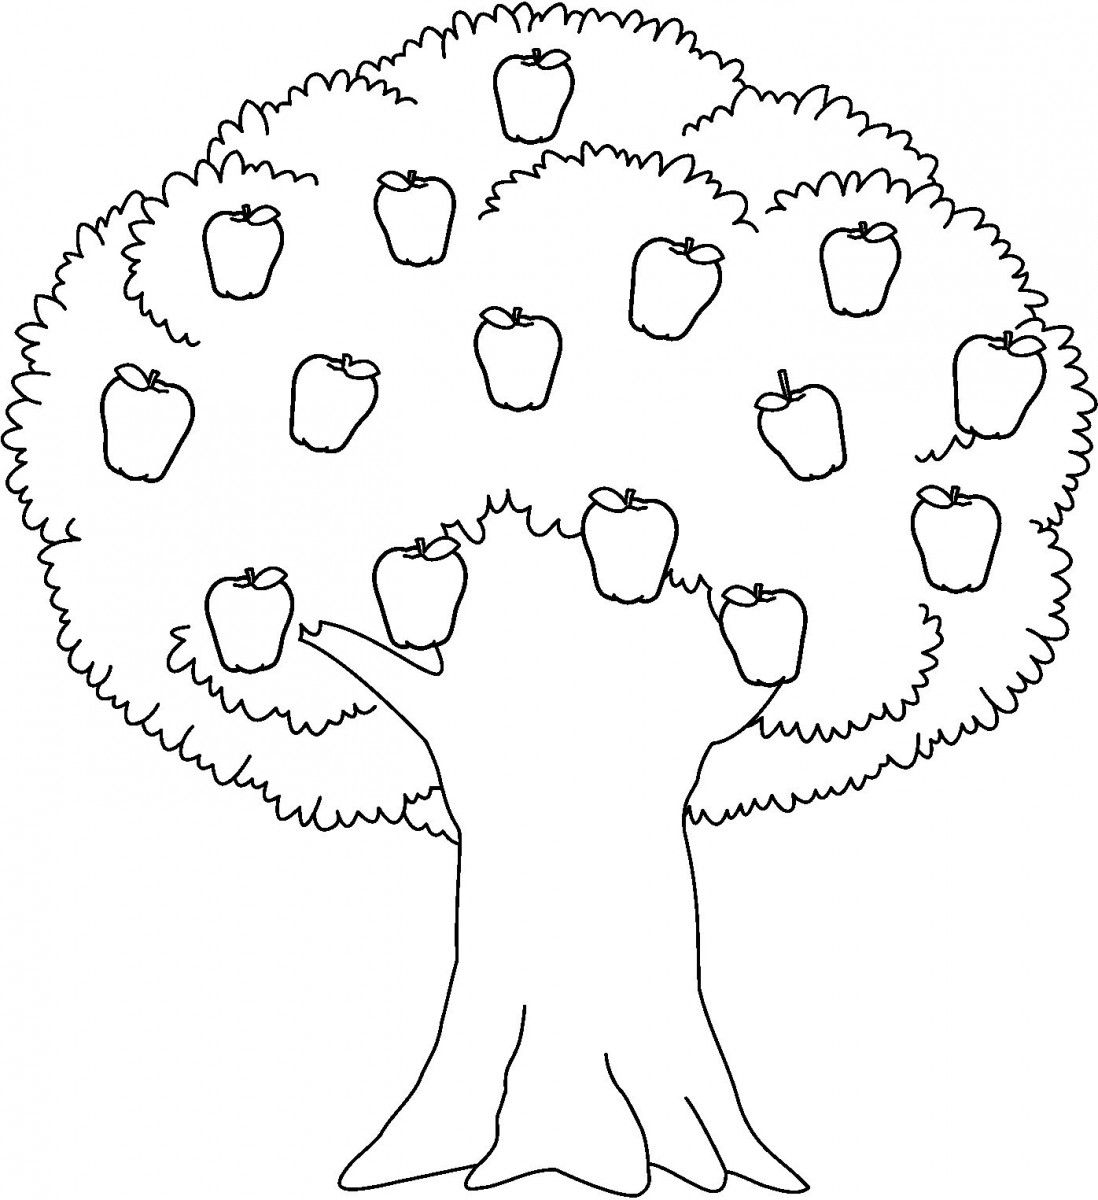 Apple black and white apple trees clipart black and white.